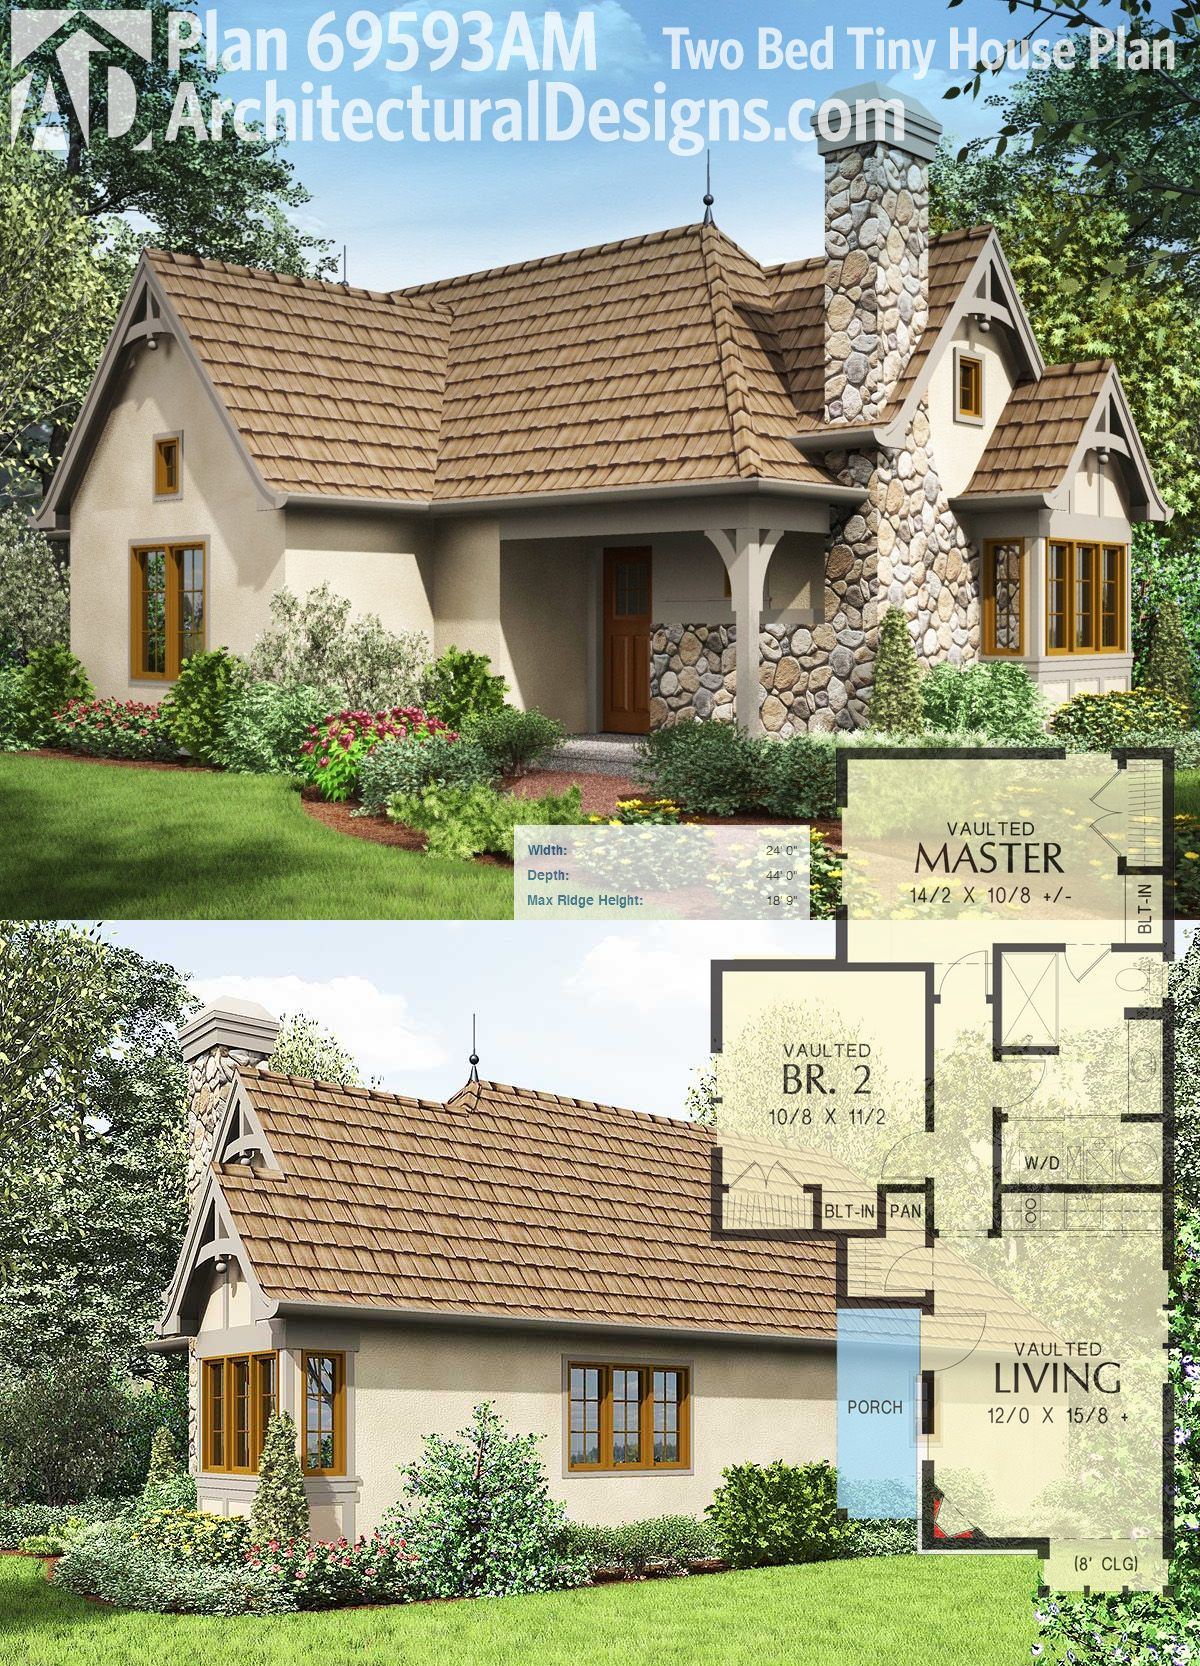 2 Bedroom House Plans: Plan 69593AM: 2 Bed Tiny Cottage House Plan